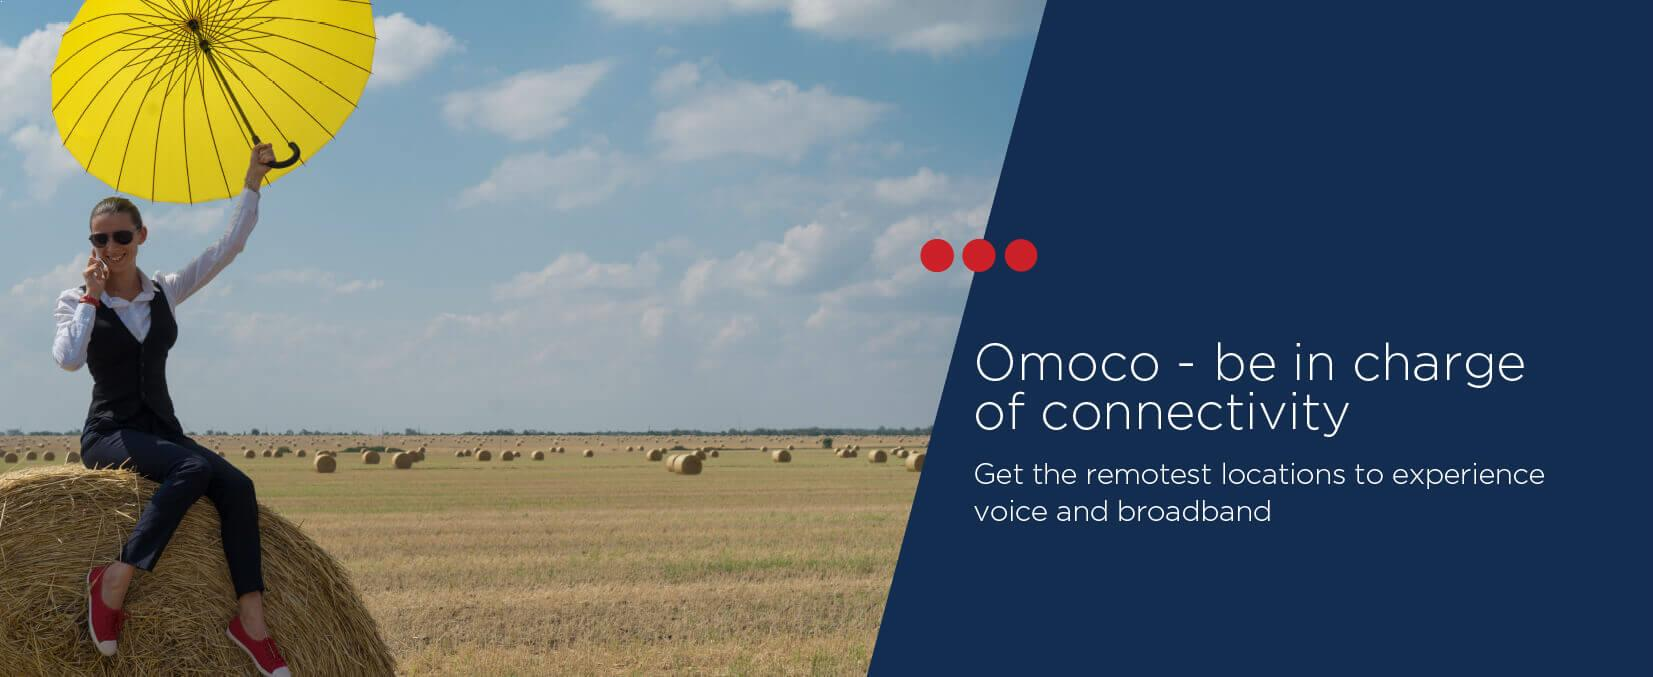 Omoco - be in charge of connectivity